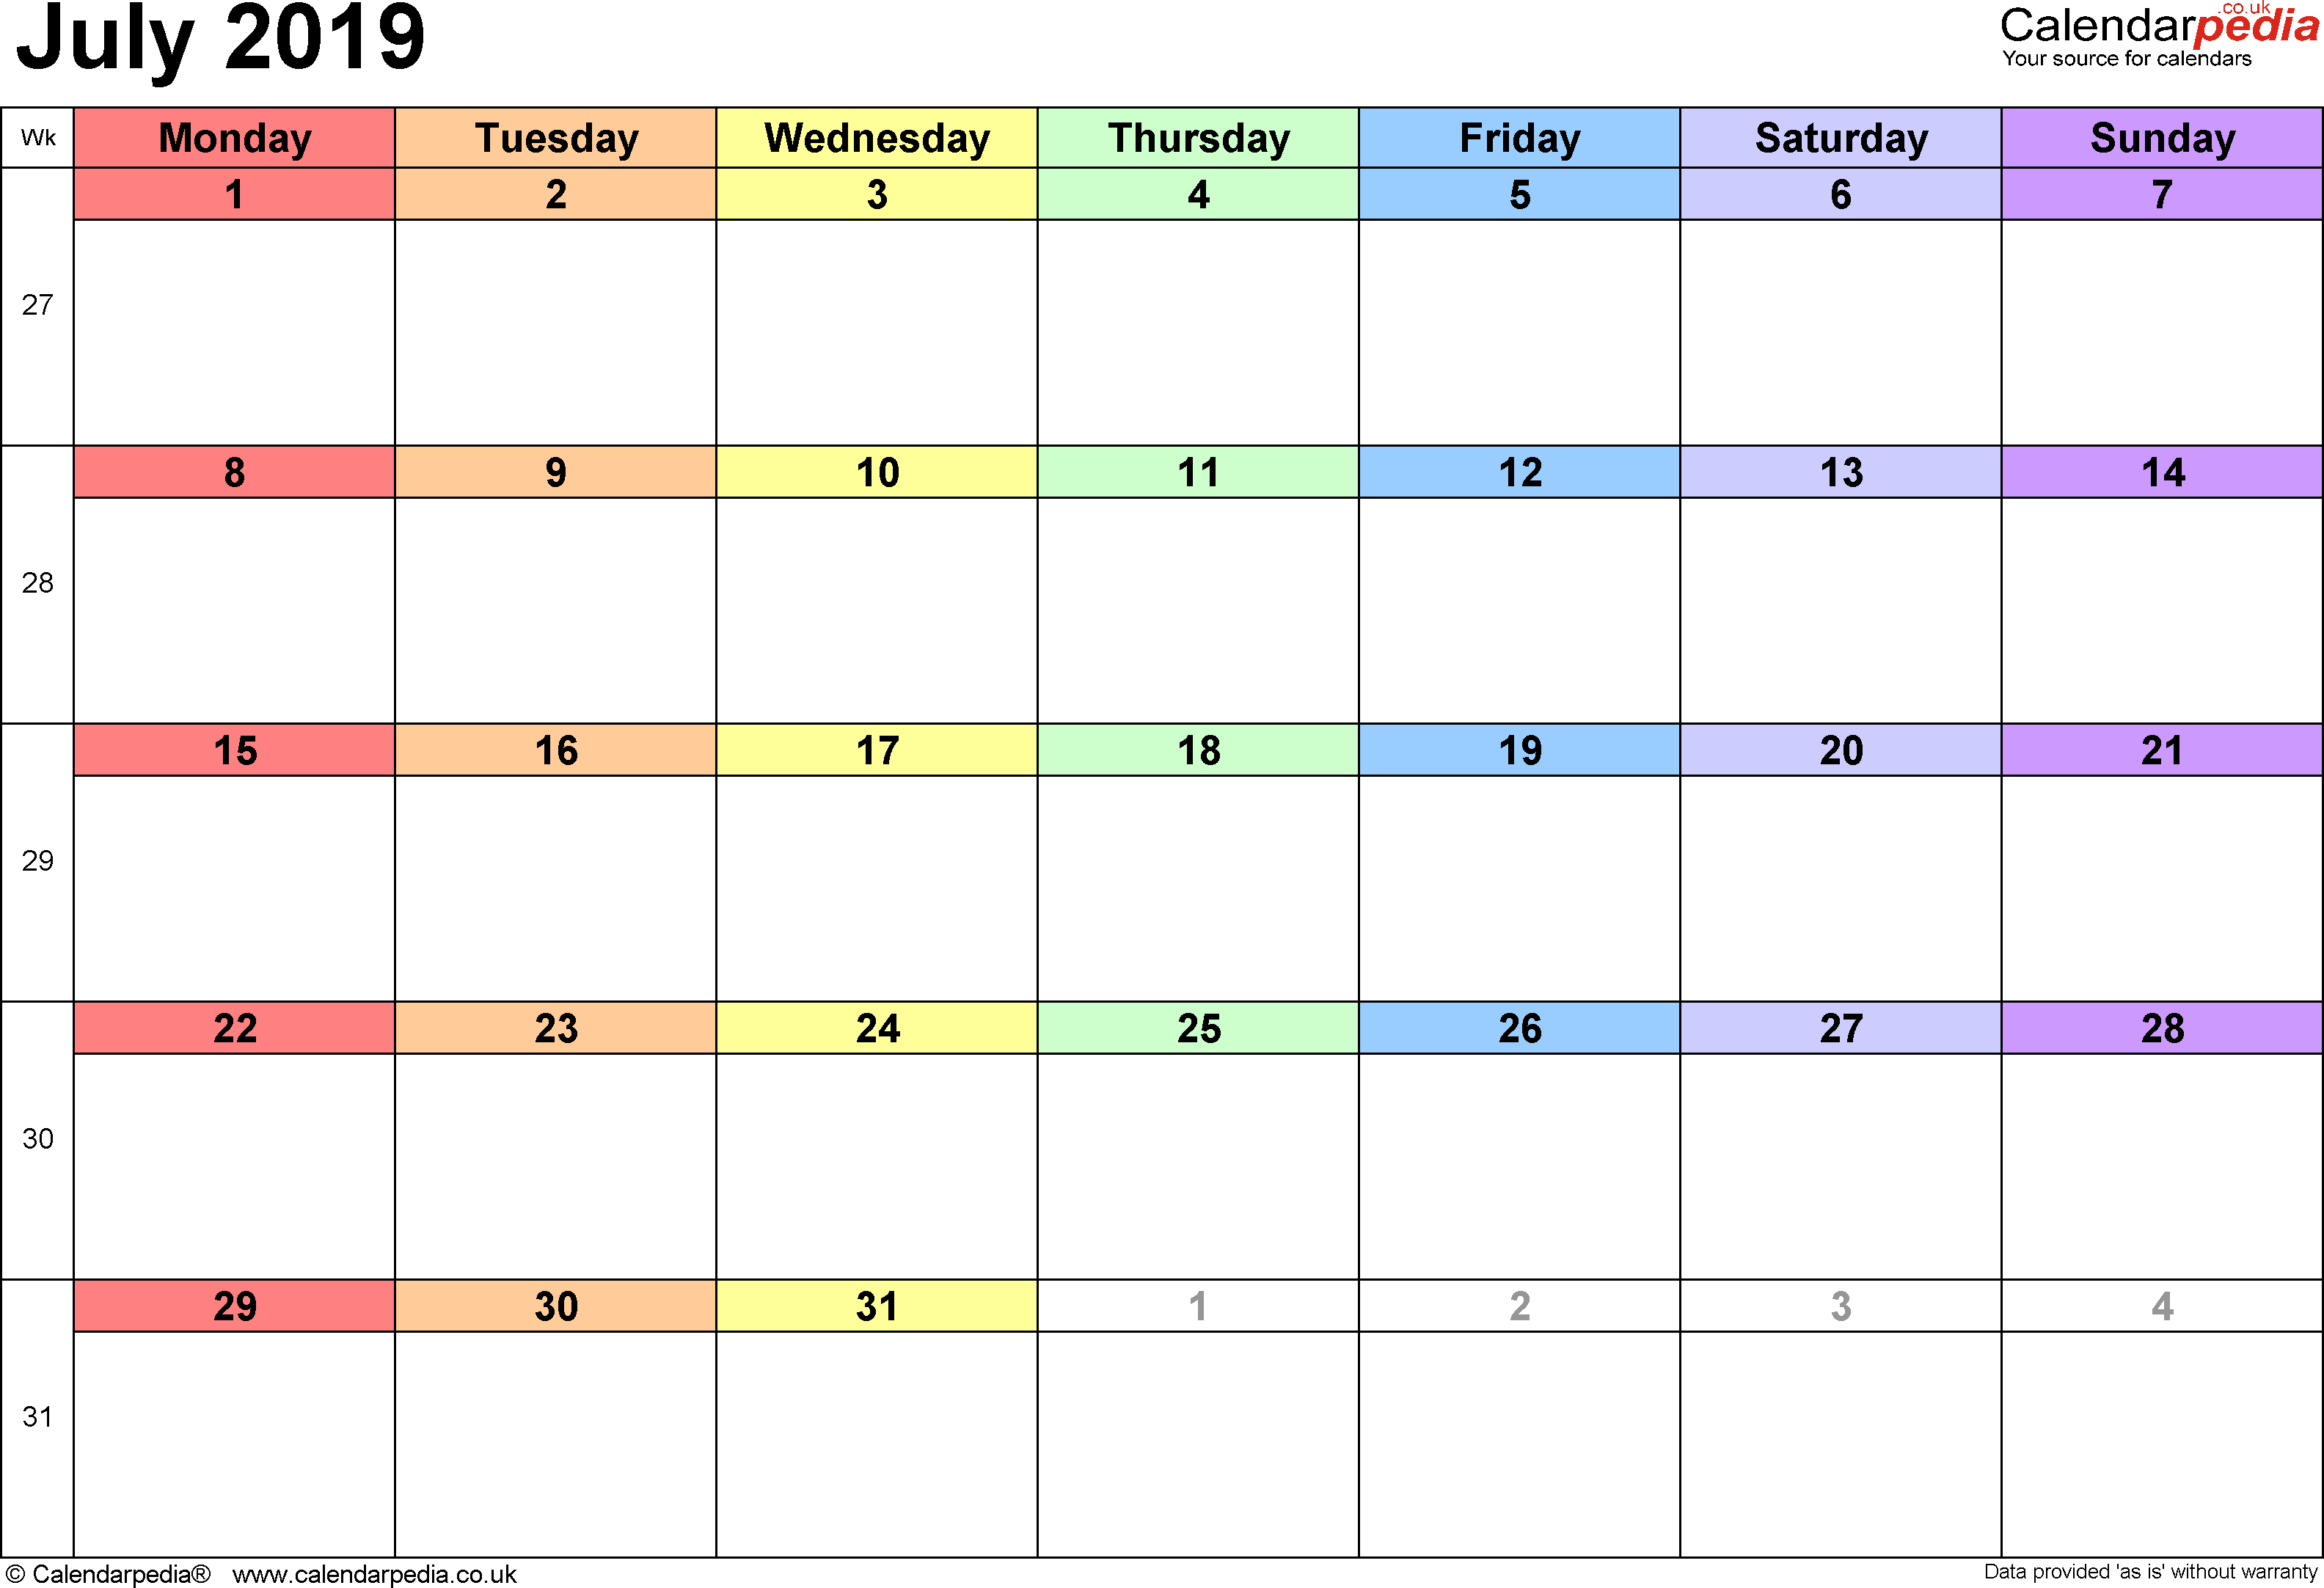 Calendar July 2019 Uk, Bank Holidays, Excel/pdf/word Templates Calendar 2019 Calendarpedia